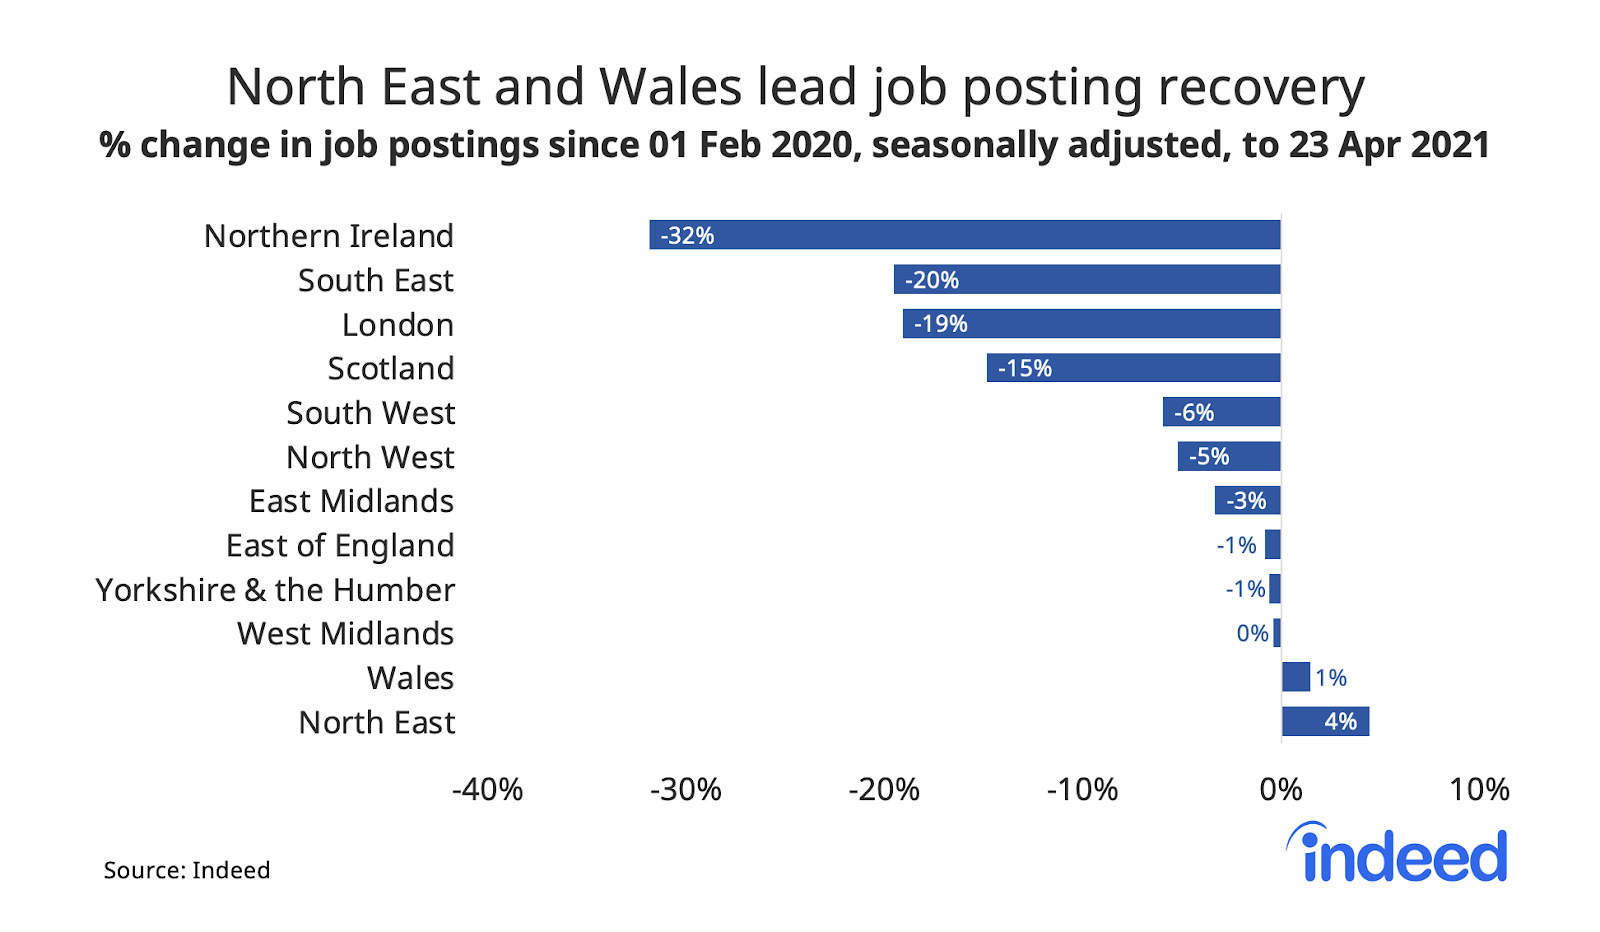 Bar graph showing north east and wale lead job posting recovery